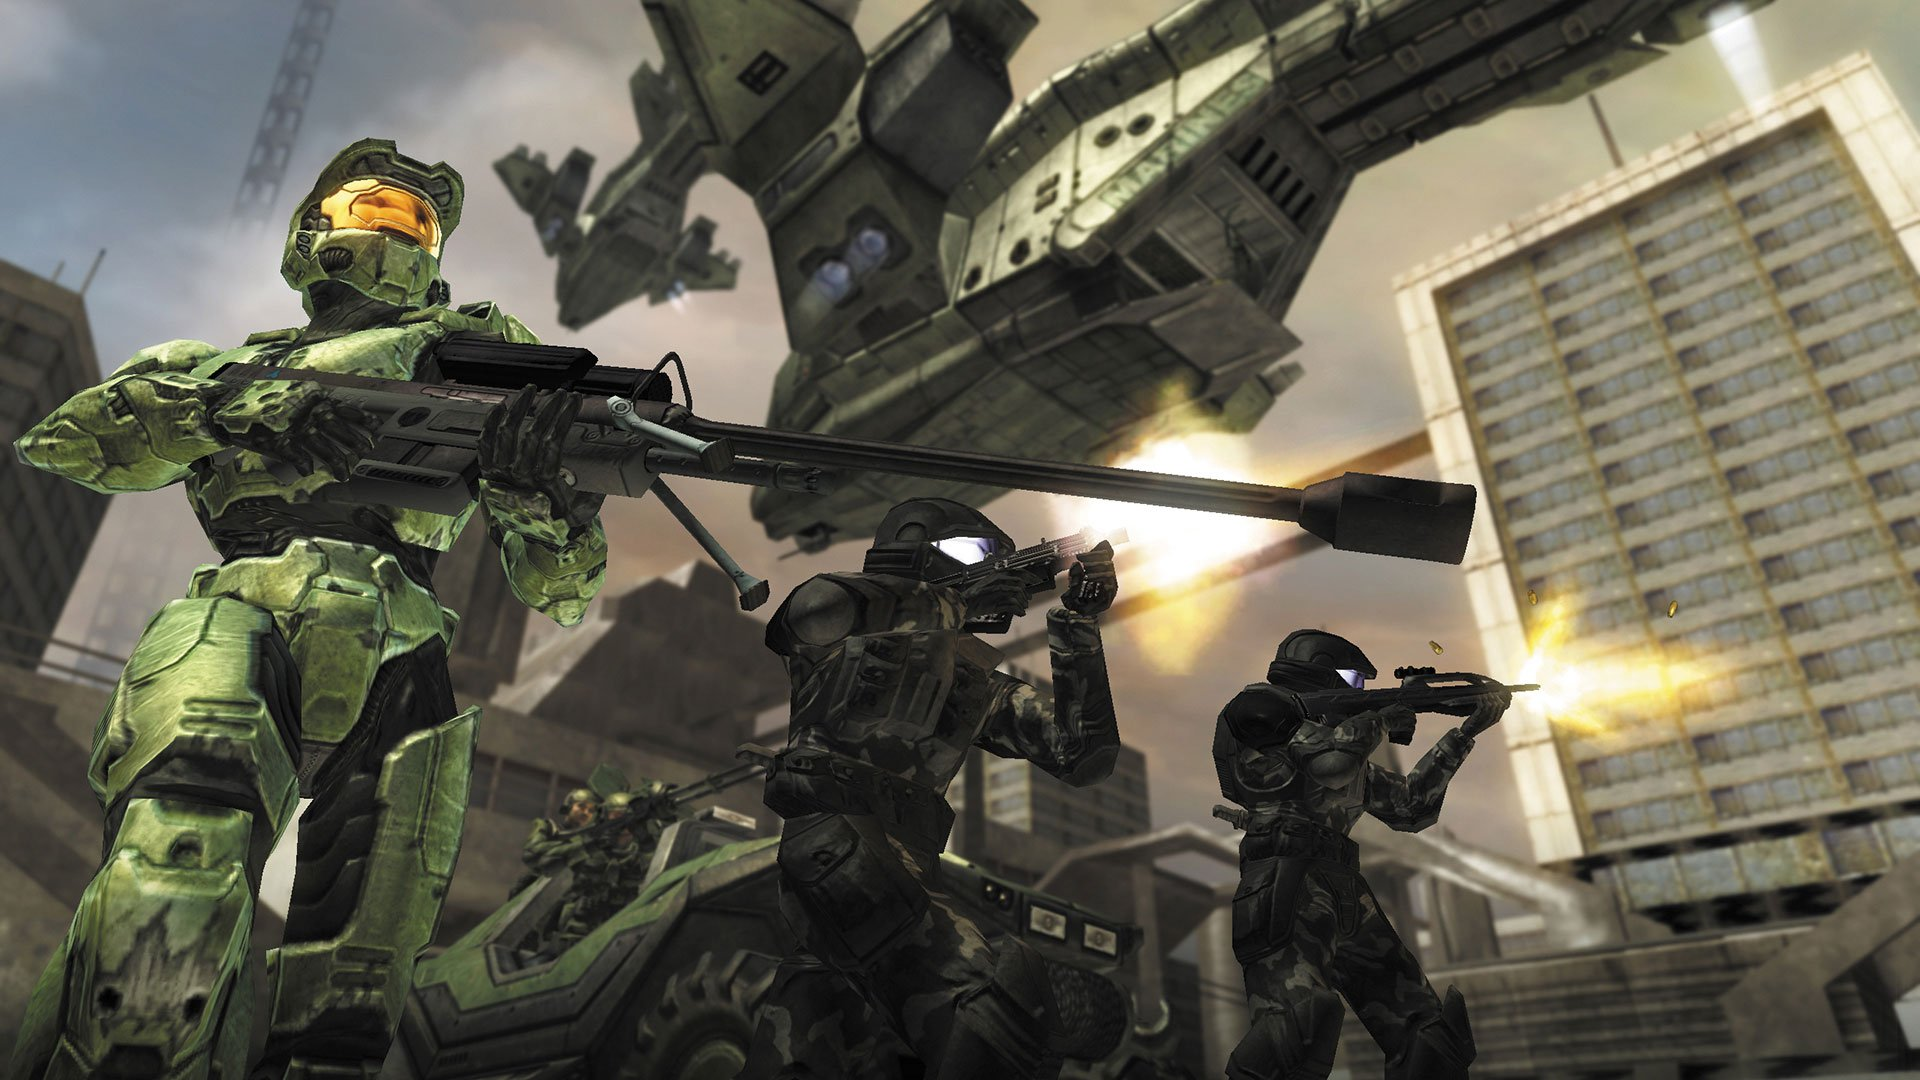 Xbox implies plans to port some old Halo to PC screenshot